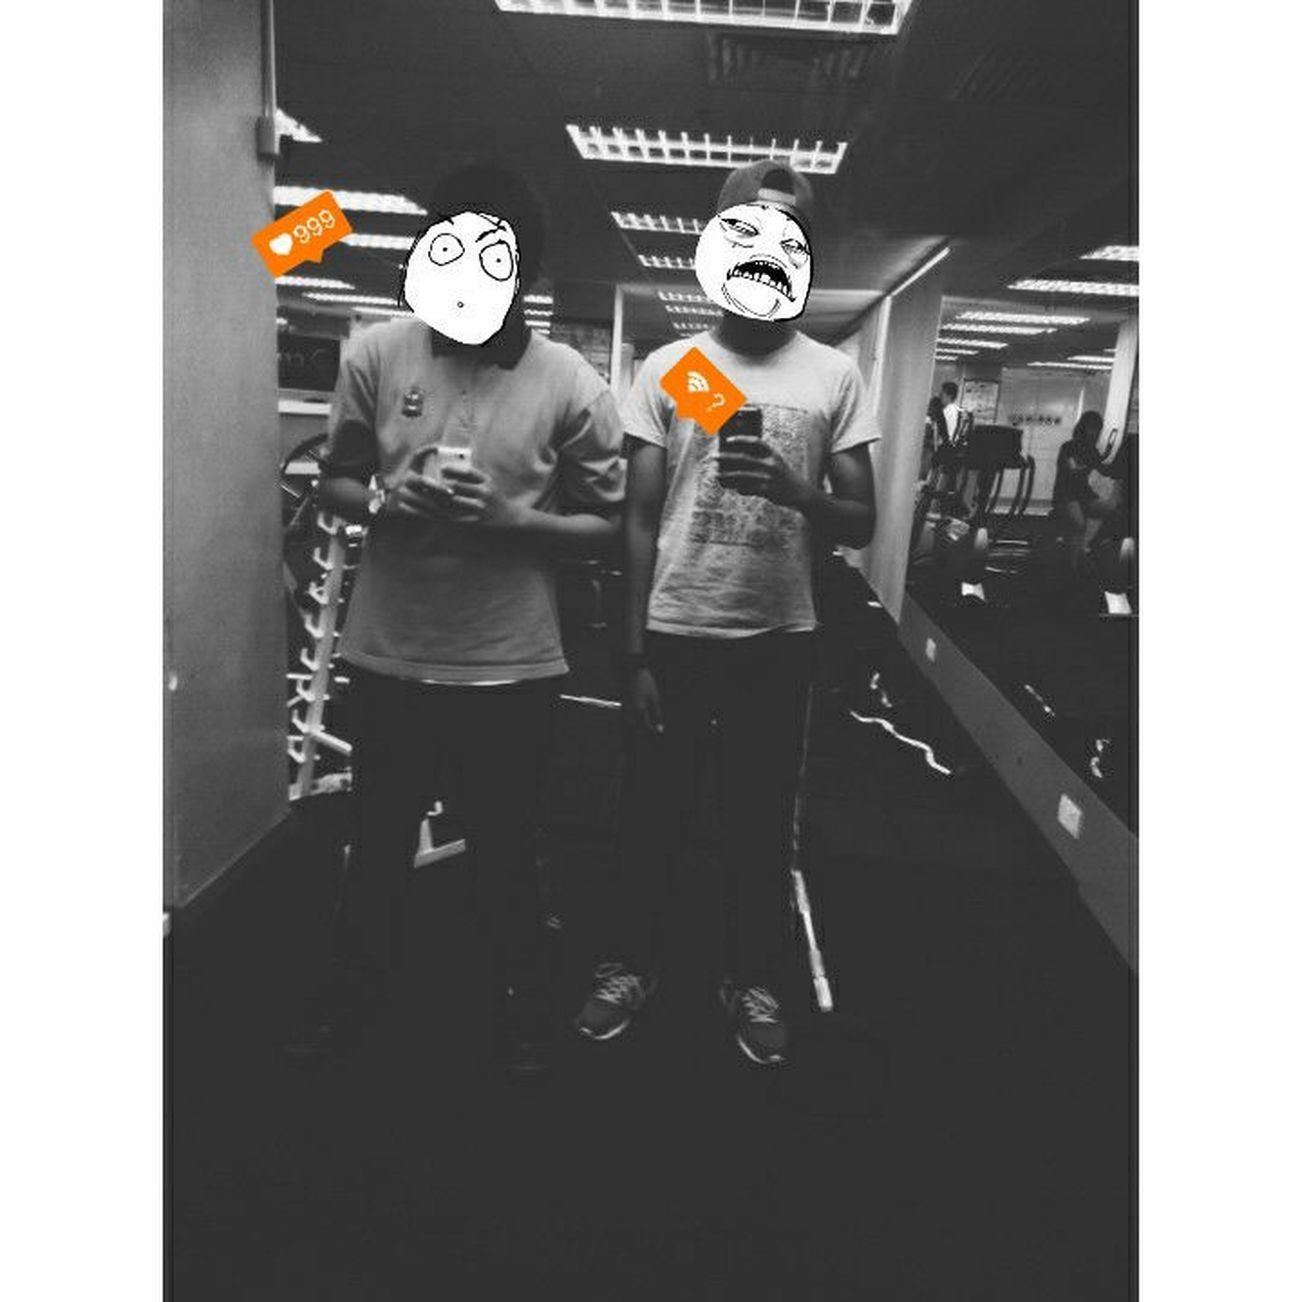 at the gym utc kedah wit my friend throwback Taking Photos GiddyLizer Malaysian That's Me Good Morning Mirror Wefie Gym Gym Time Trollface